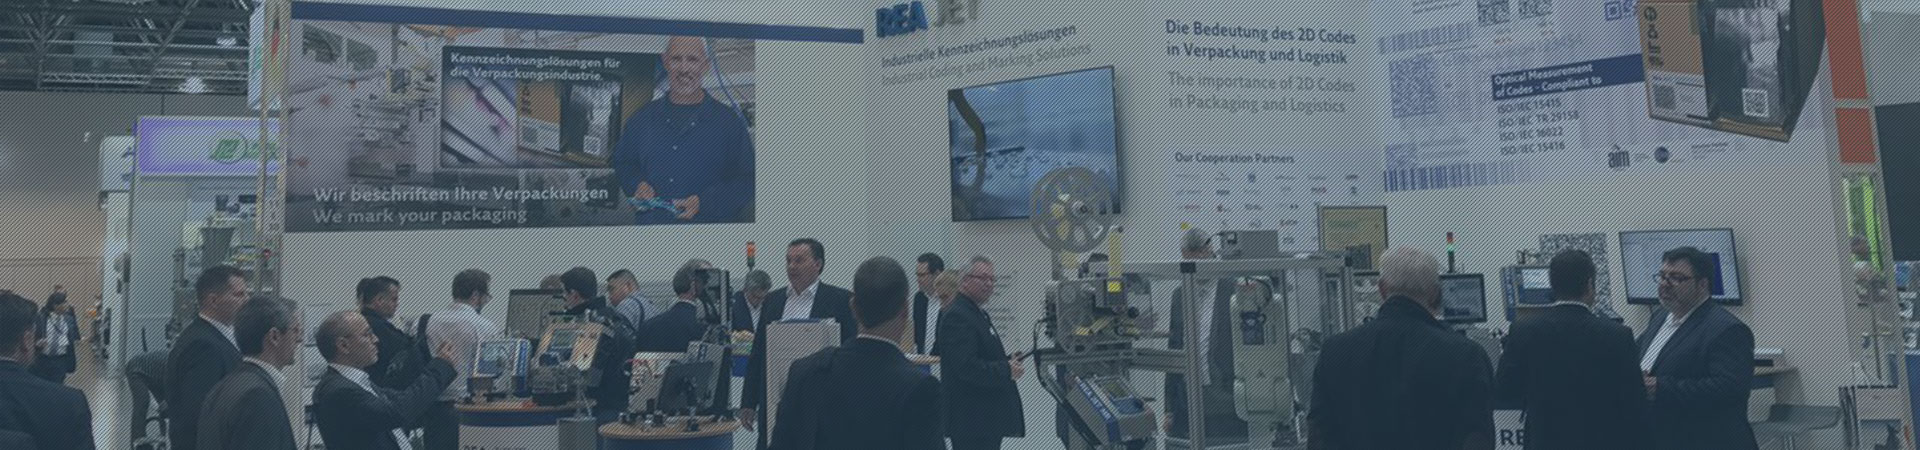 Coding and marking solutions from REA JET presented at trade shows around the world